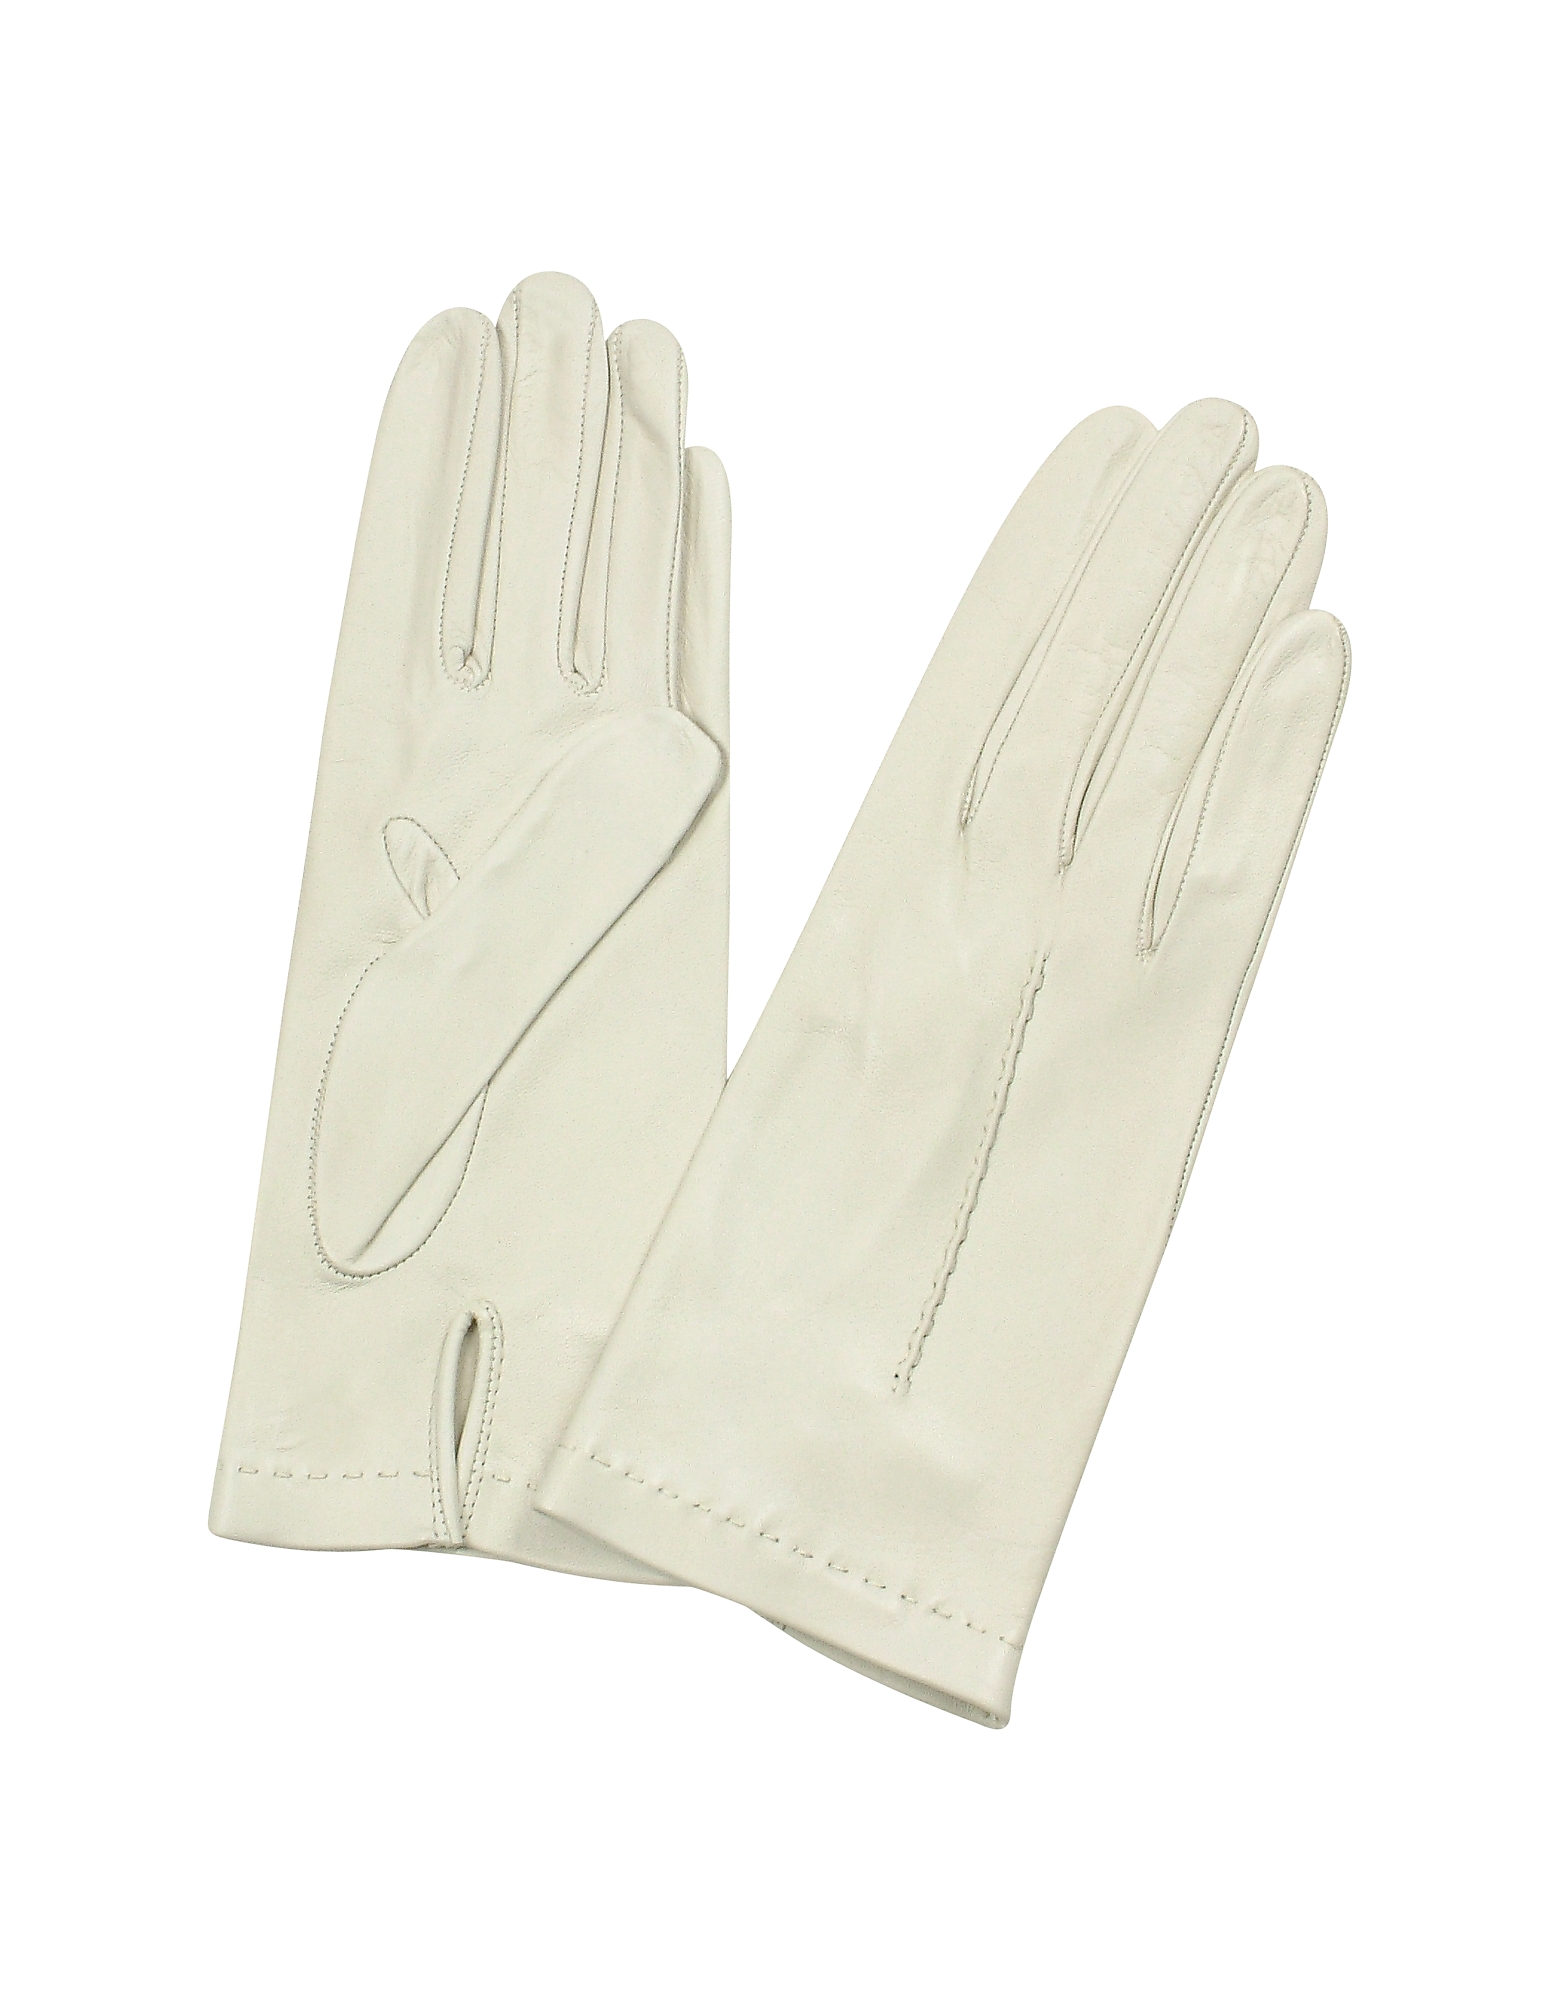 Vintage Style Gloves- Long, Wrist, Evening, Day, Leather, Lace Forzieri Designer Womens Gloves Womens Ivory Unlined Italian Leather Gloves $161.00 AT vintagedancer.com